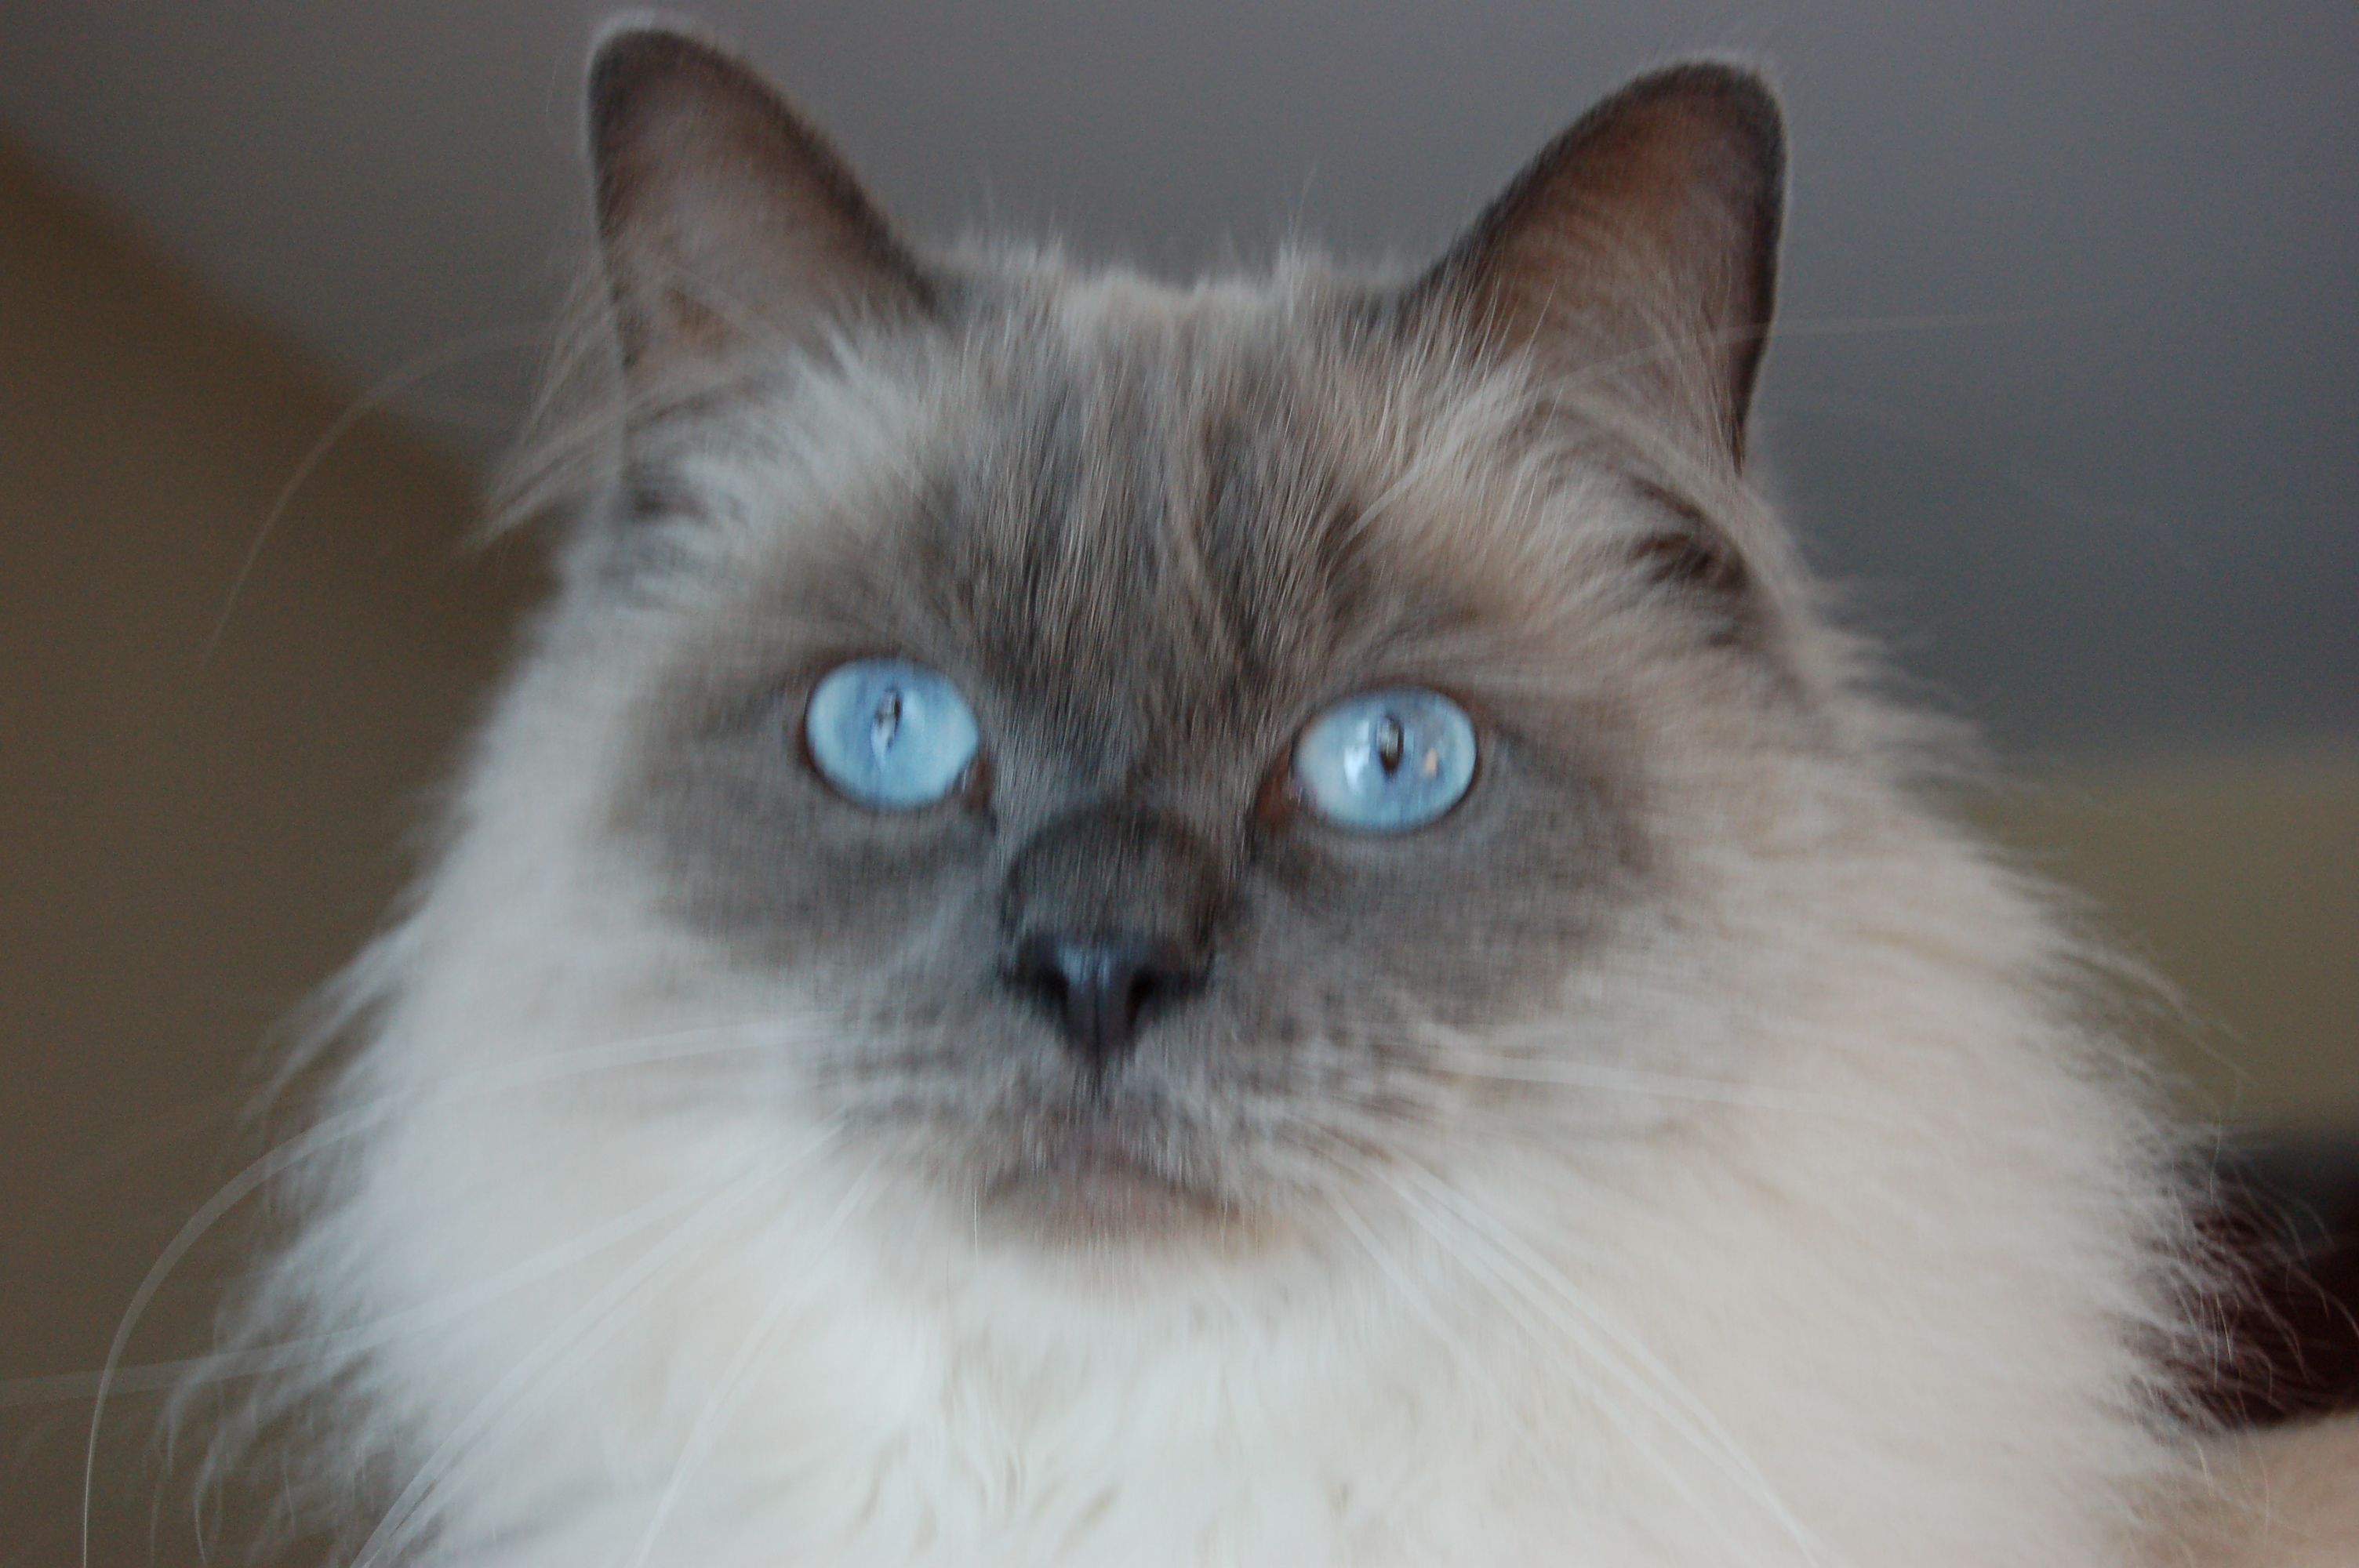 Lagniappe, our 8-year-old 'baby' Ragdoll